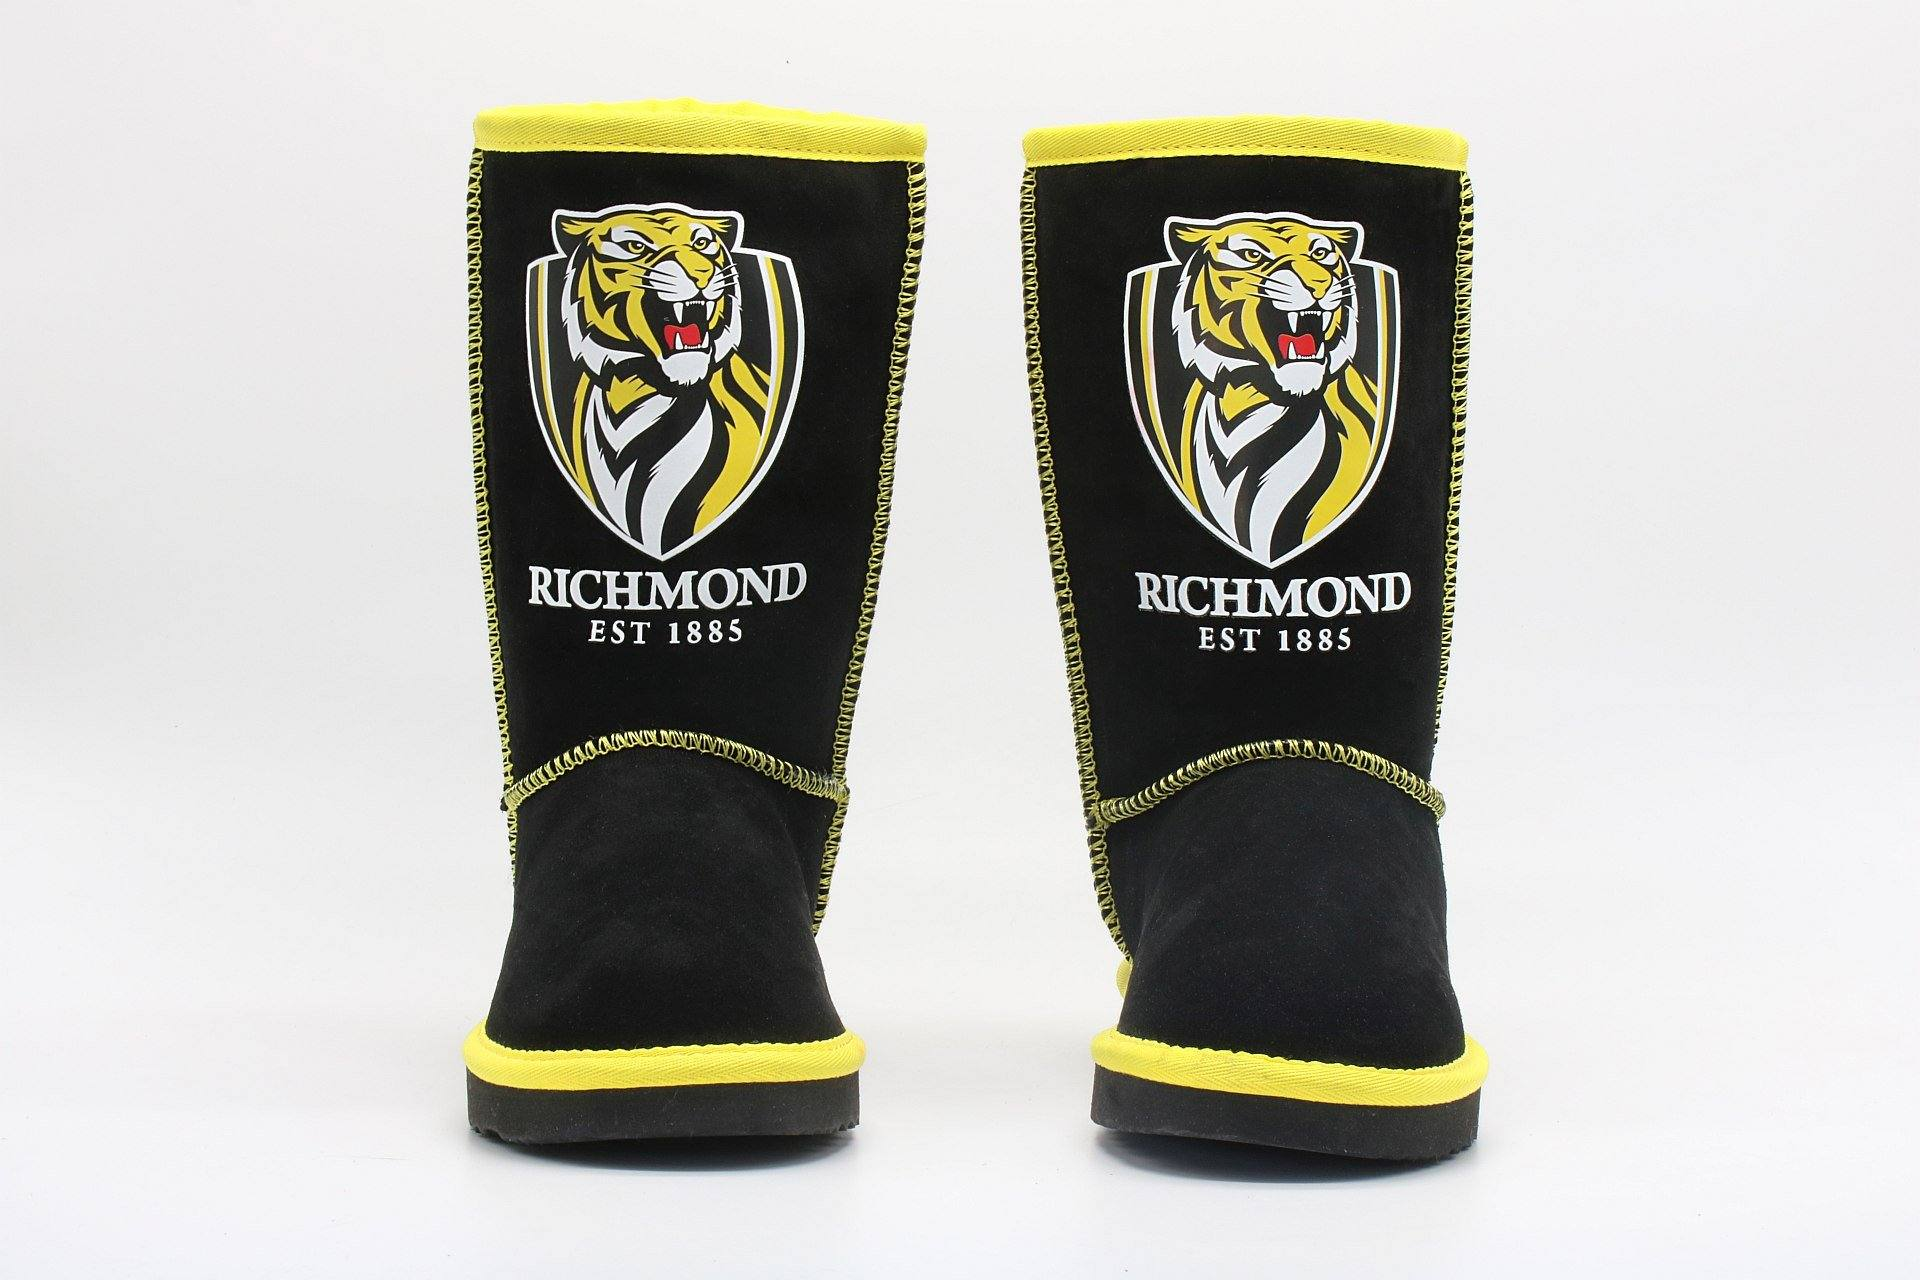 AFL Adult Ugg Boots - Richmond Tigers Footwear Team Uggs